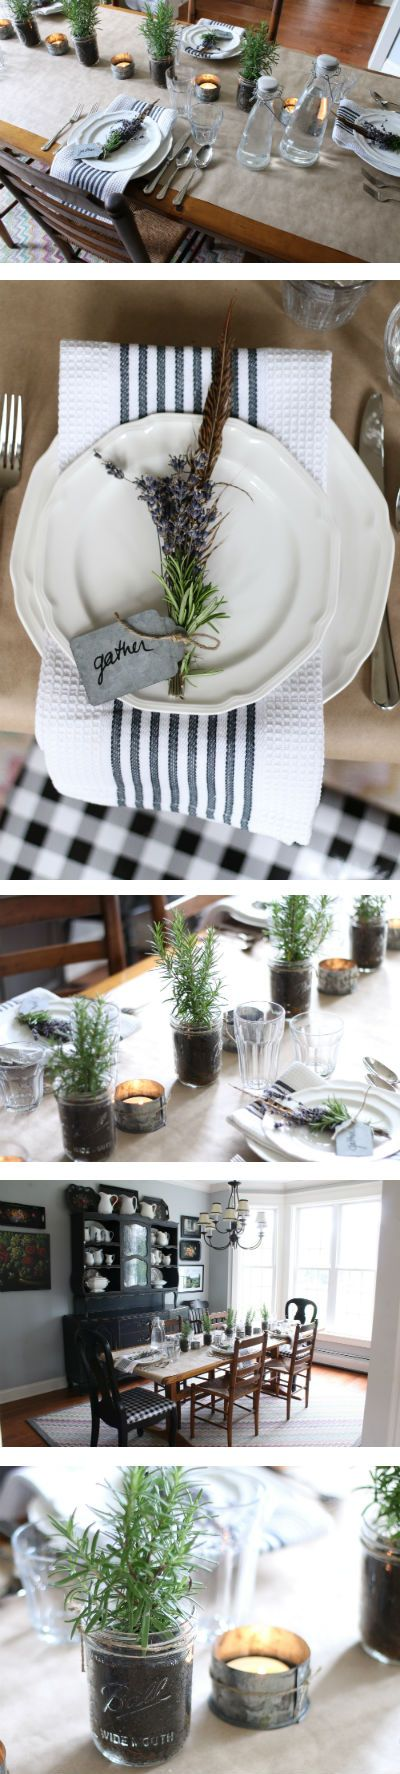 Cute Table Settings